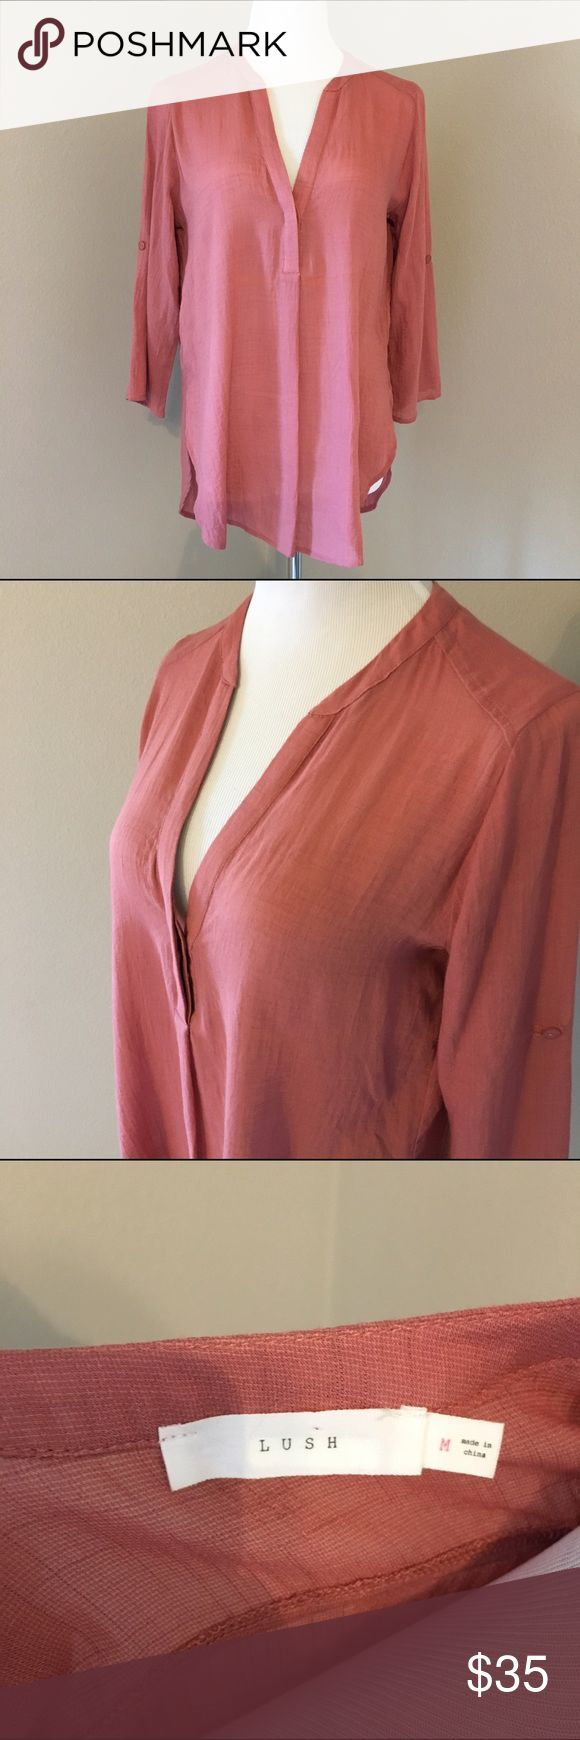 Tunic Top Transitional sleeves and deep v neck line. Hi-low hem. In excellent used condition. Dusty Rose color. Measurements only by request. Lush Tops Tunics